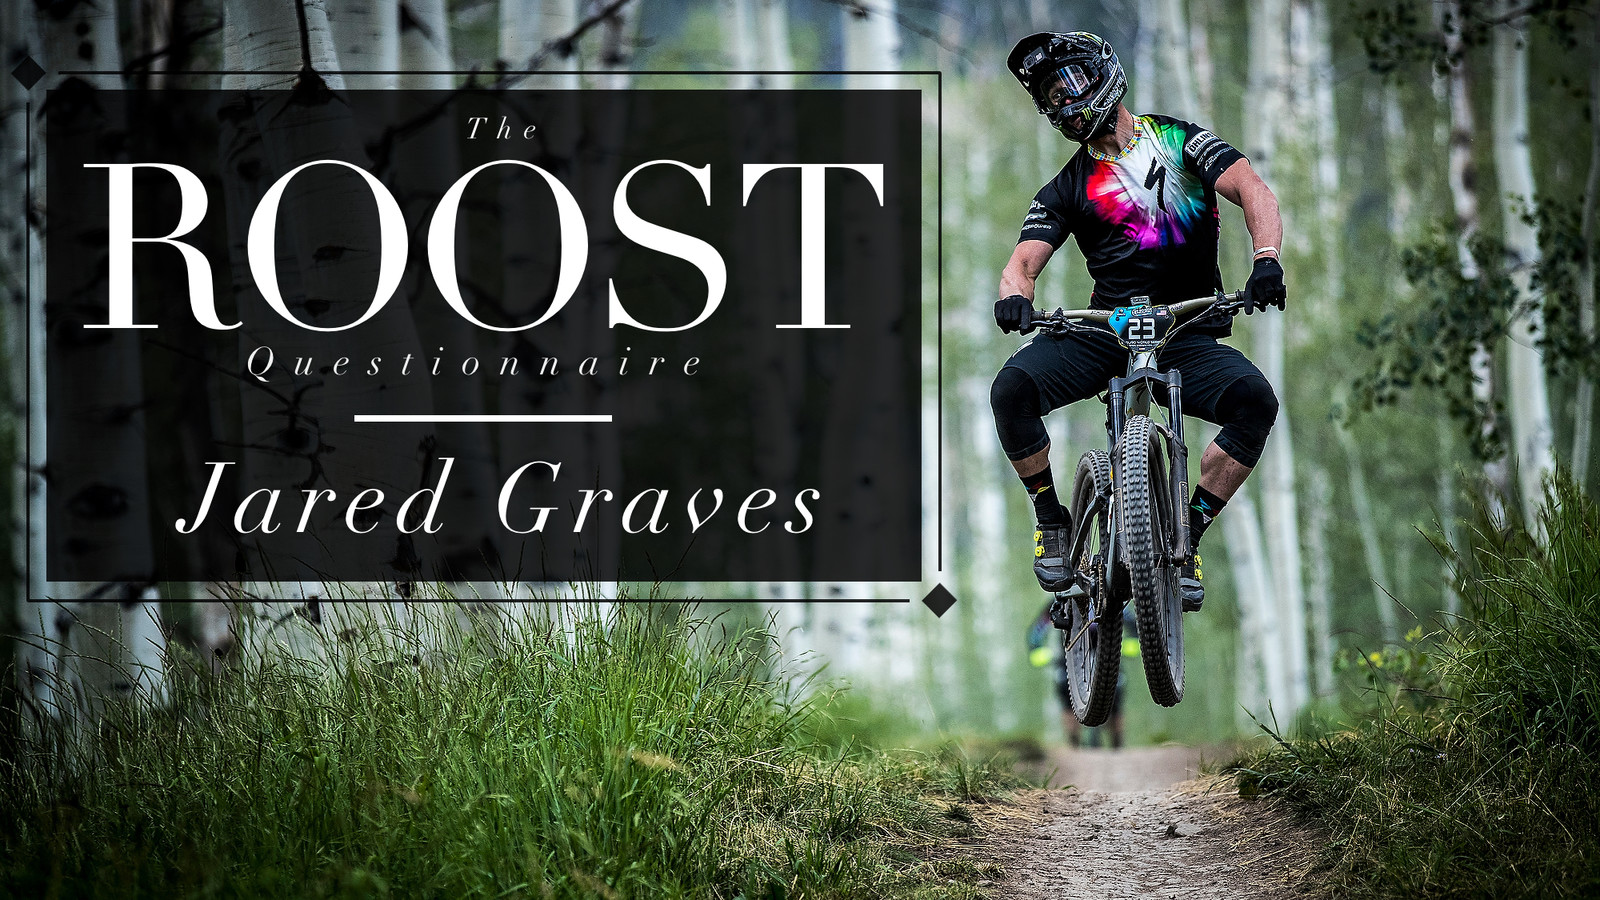 The ROOST Questionnaire #1, Jared Graves